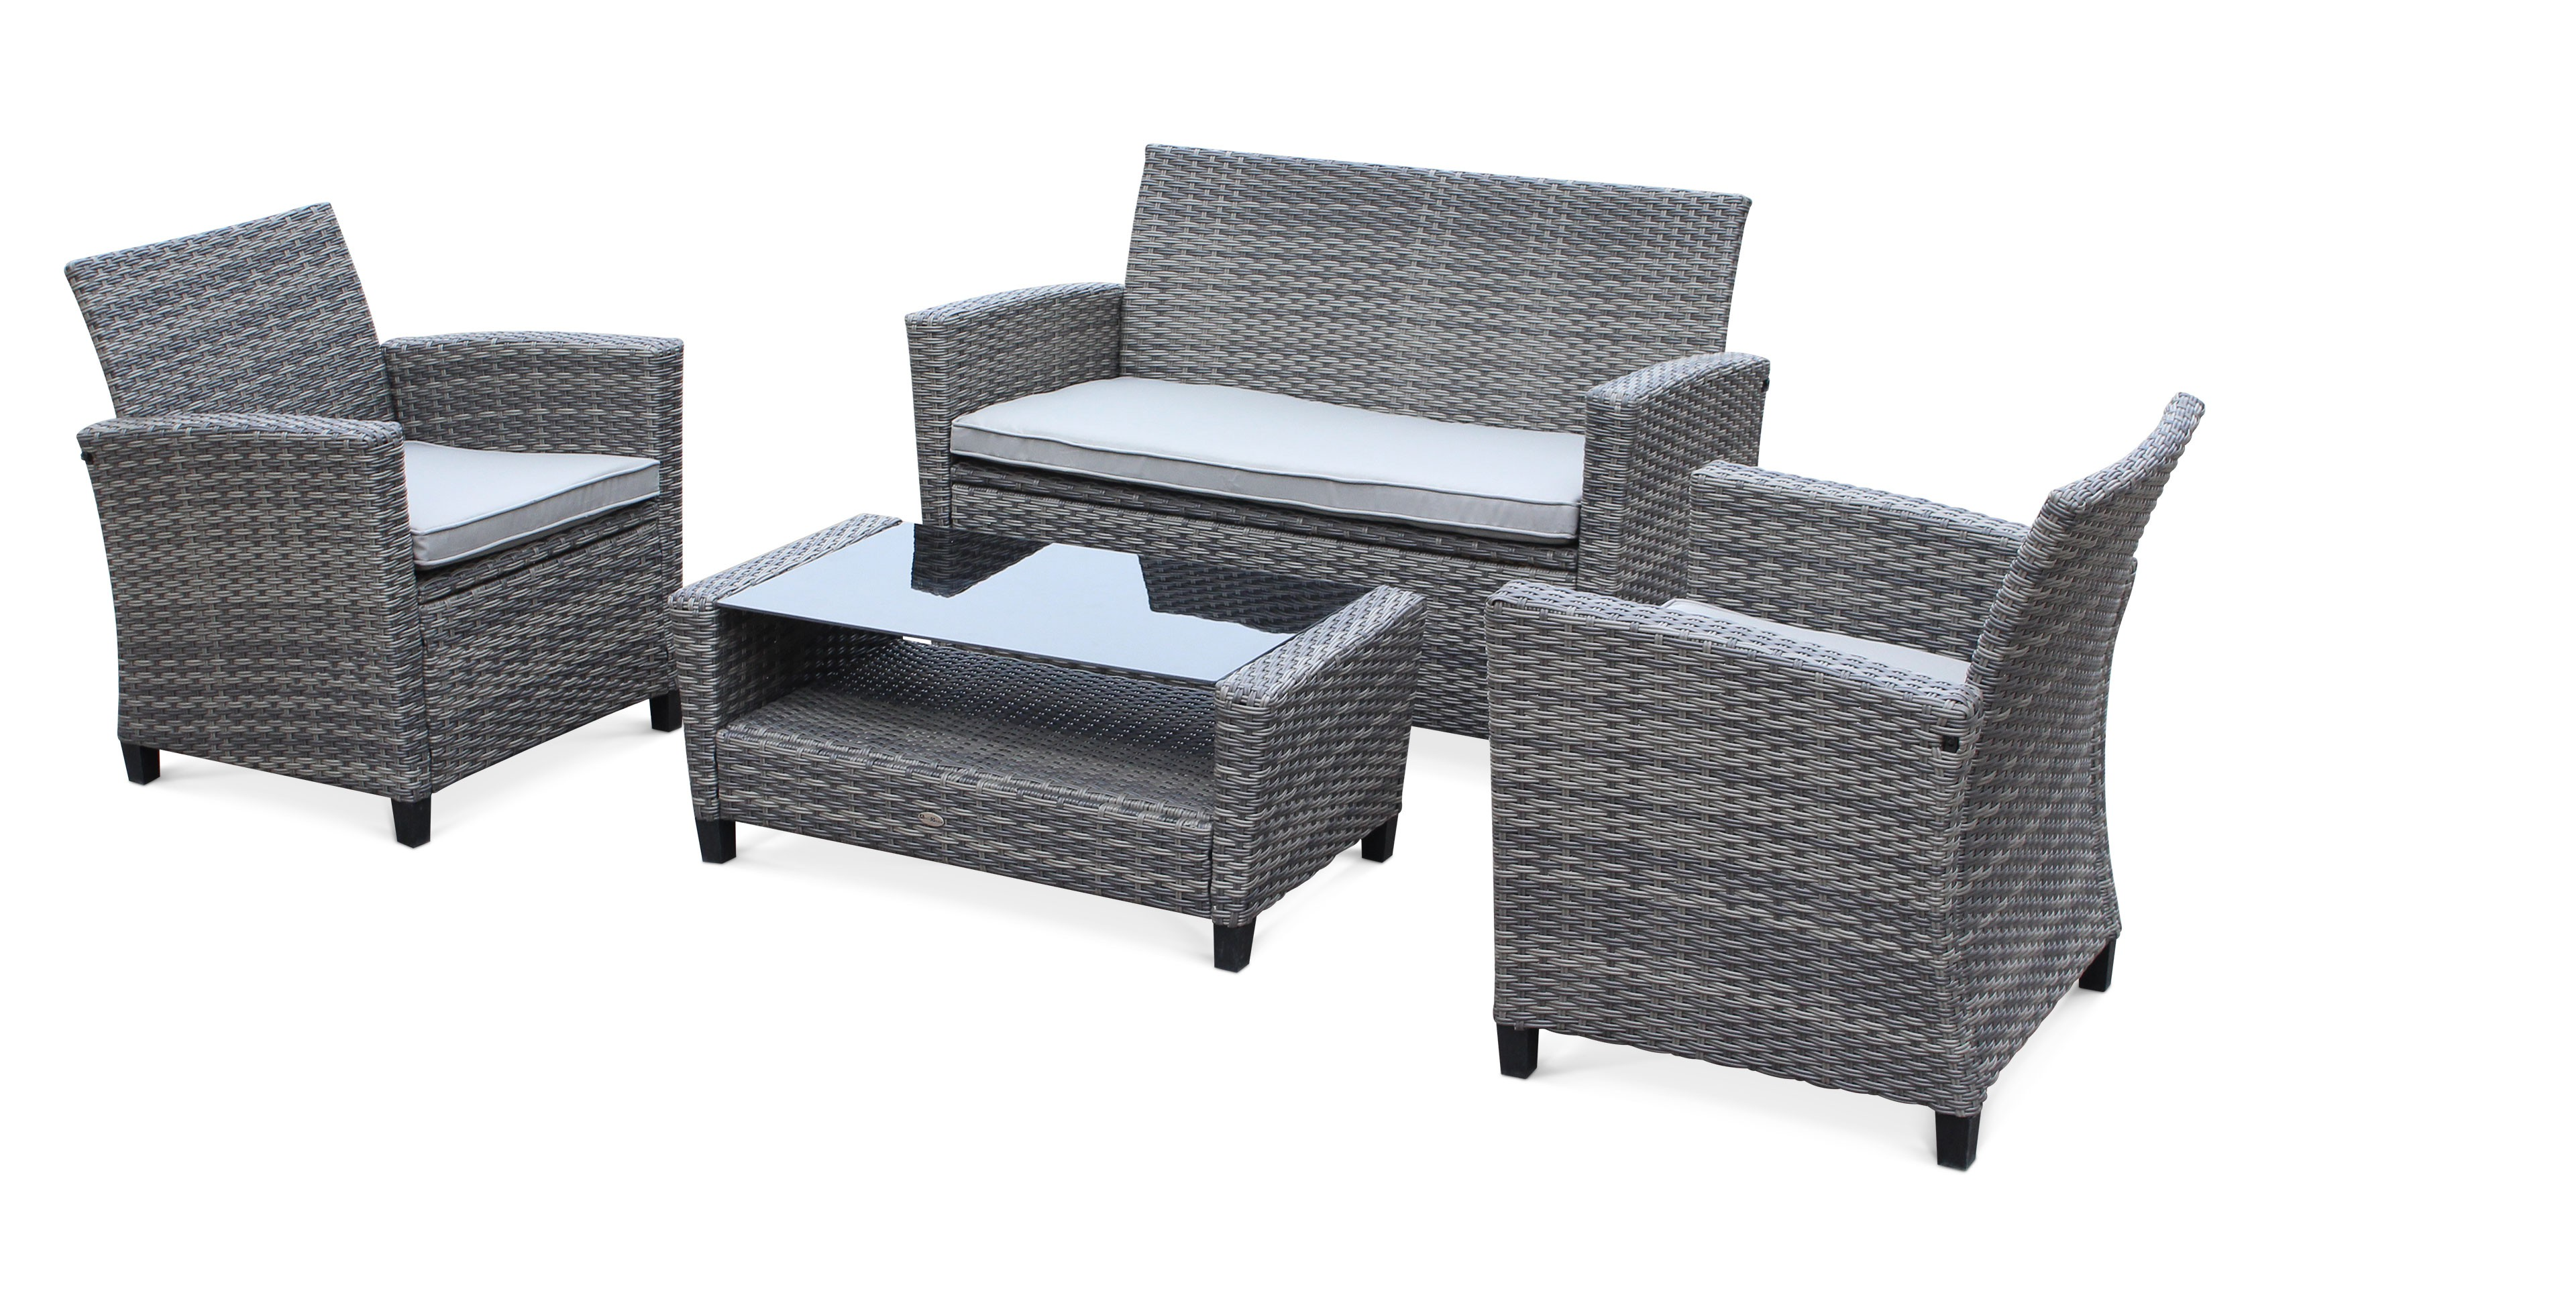 salon de jardin gris id es de d coration int rieure. Black Bedroom Furniture Sets. Home Design Ideas